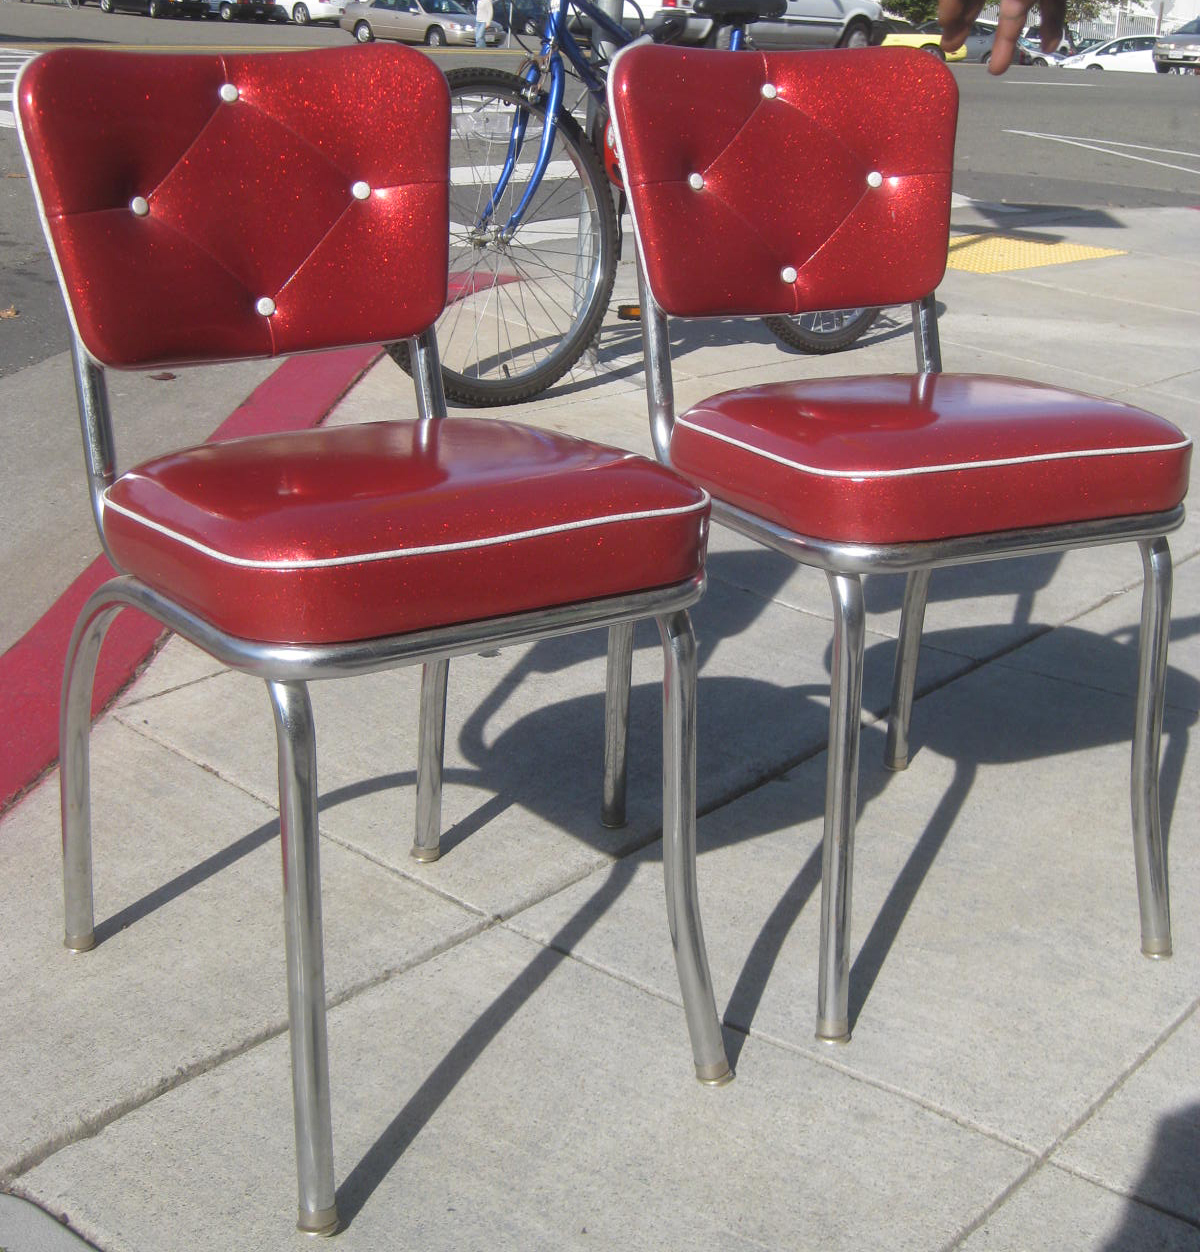 Red Retro Kitchen Table And Chairs Dining Chair Covers Spotlight Australia Uhuru Furniture Amp Collectibles Sold Two